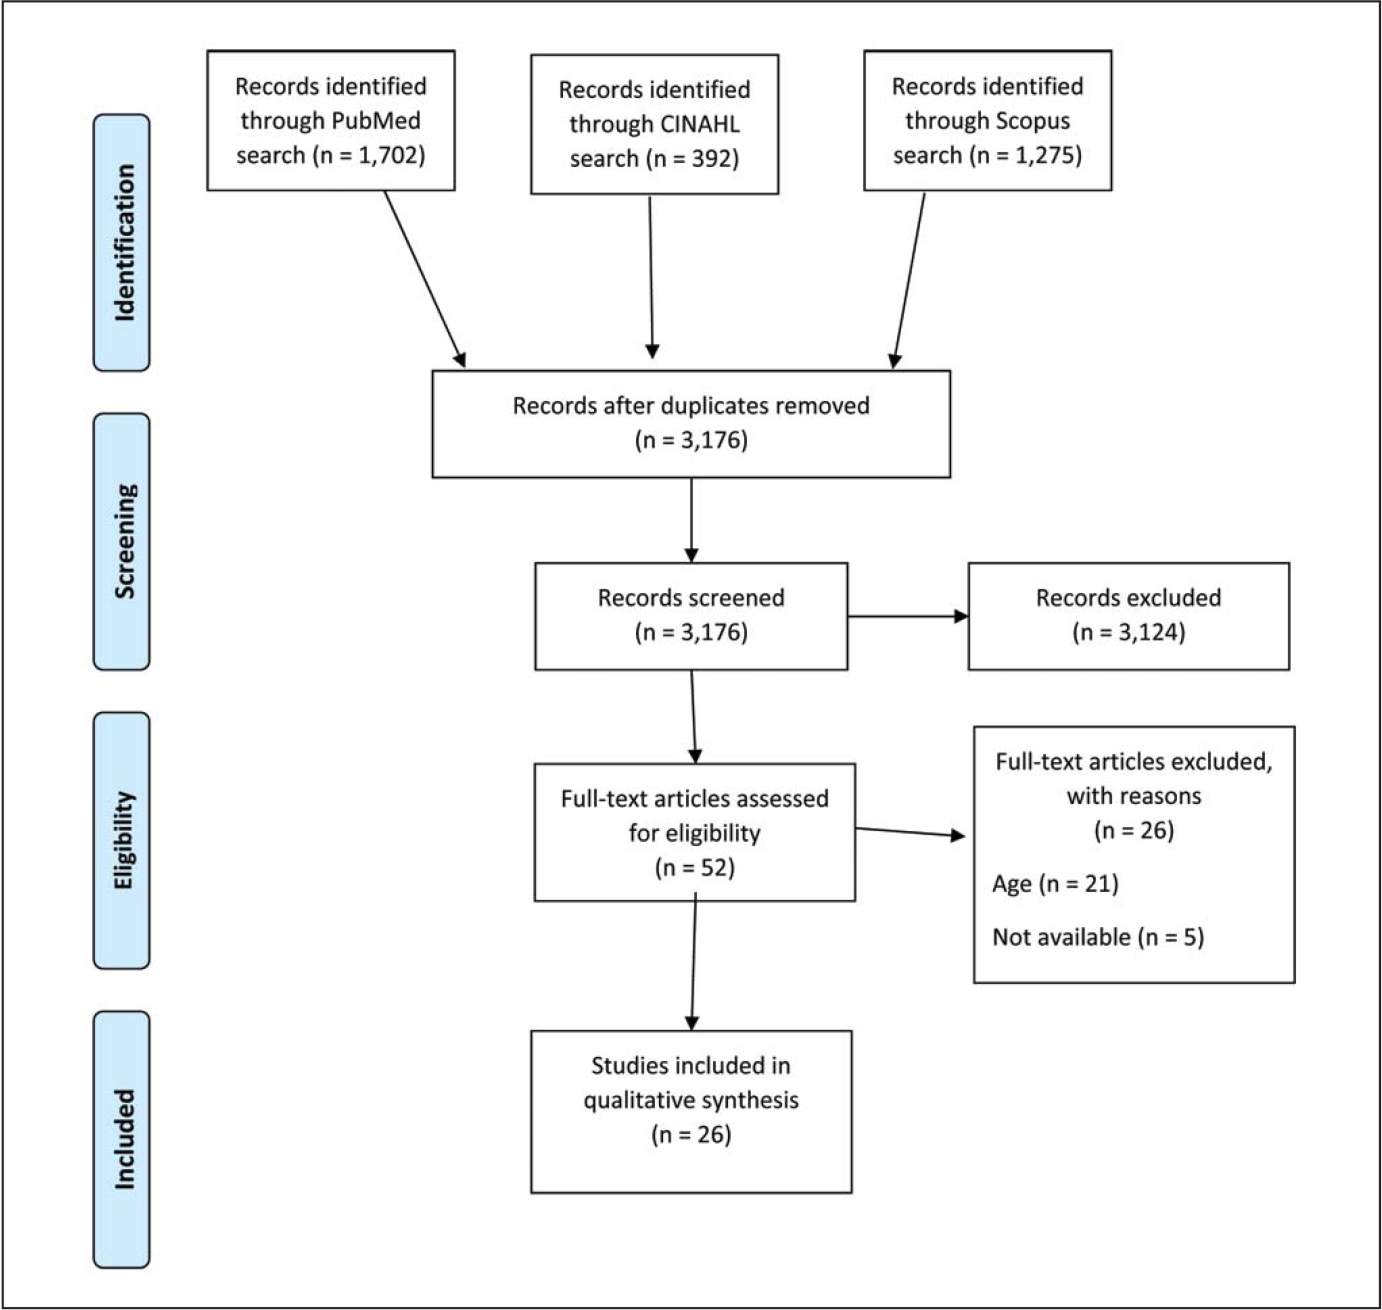 Process for selecting hypercholesterolemia studies using PRISMA guidelines (Moher, Liberati, Tetzlaff, & Altman, 2009).